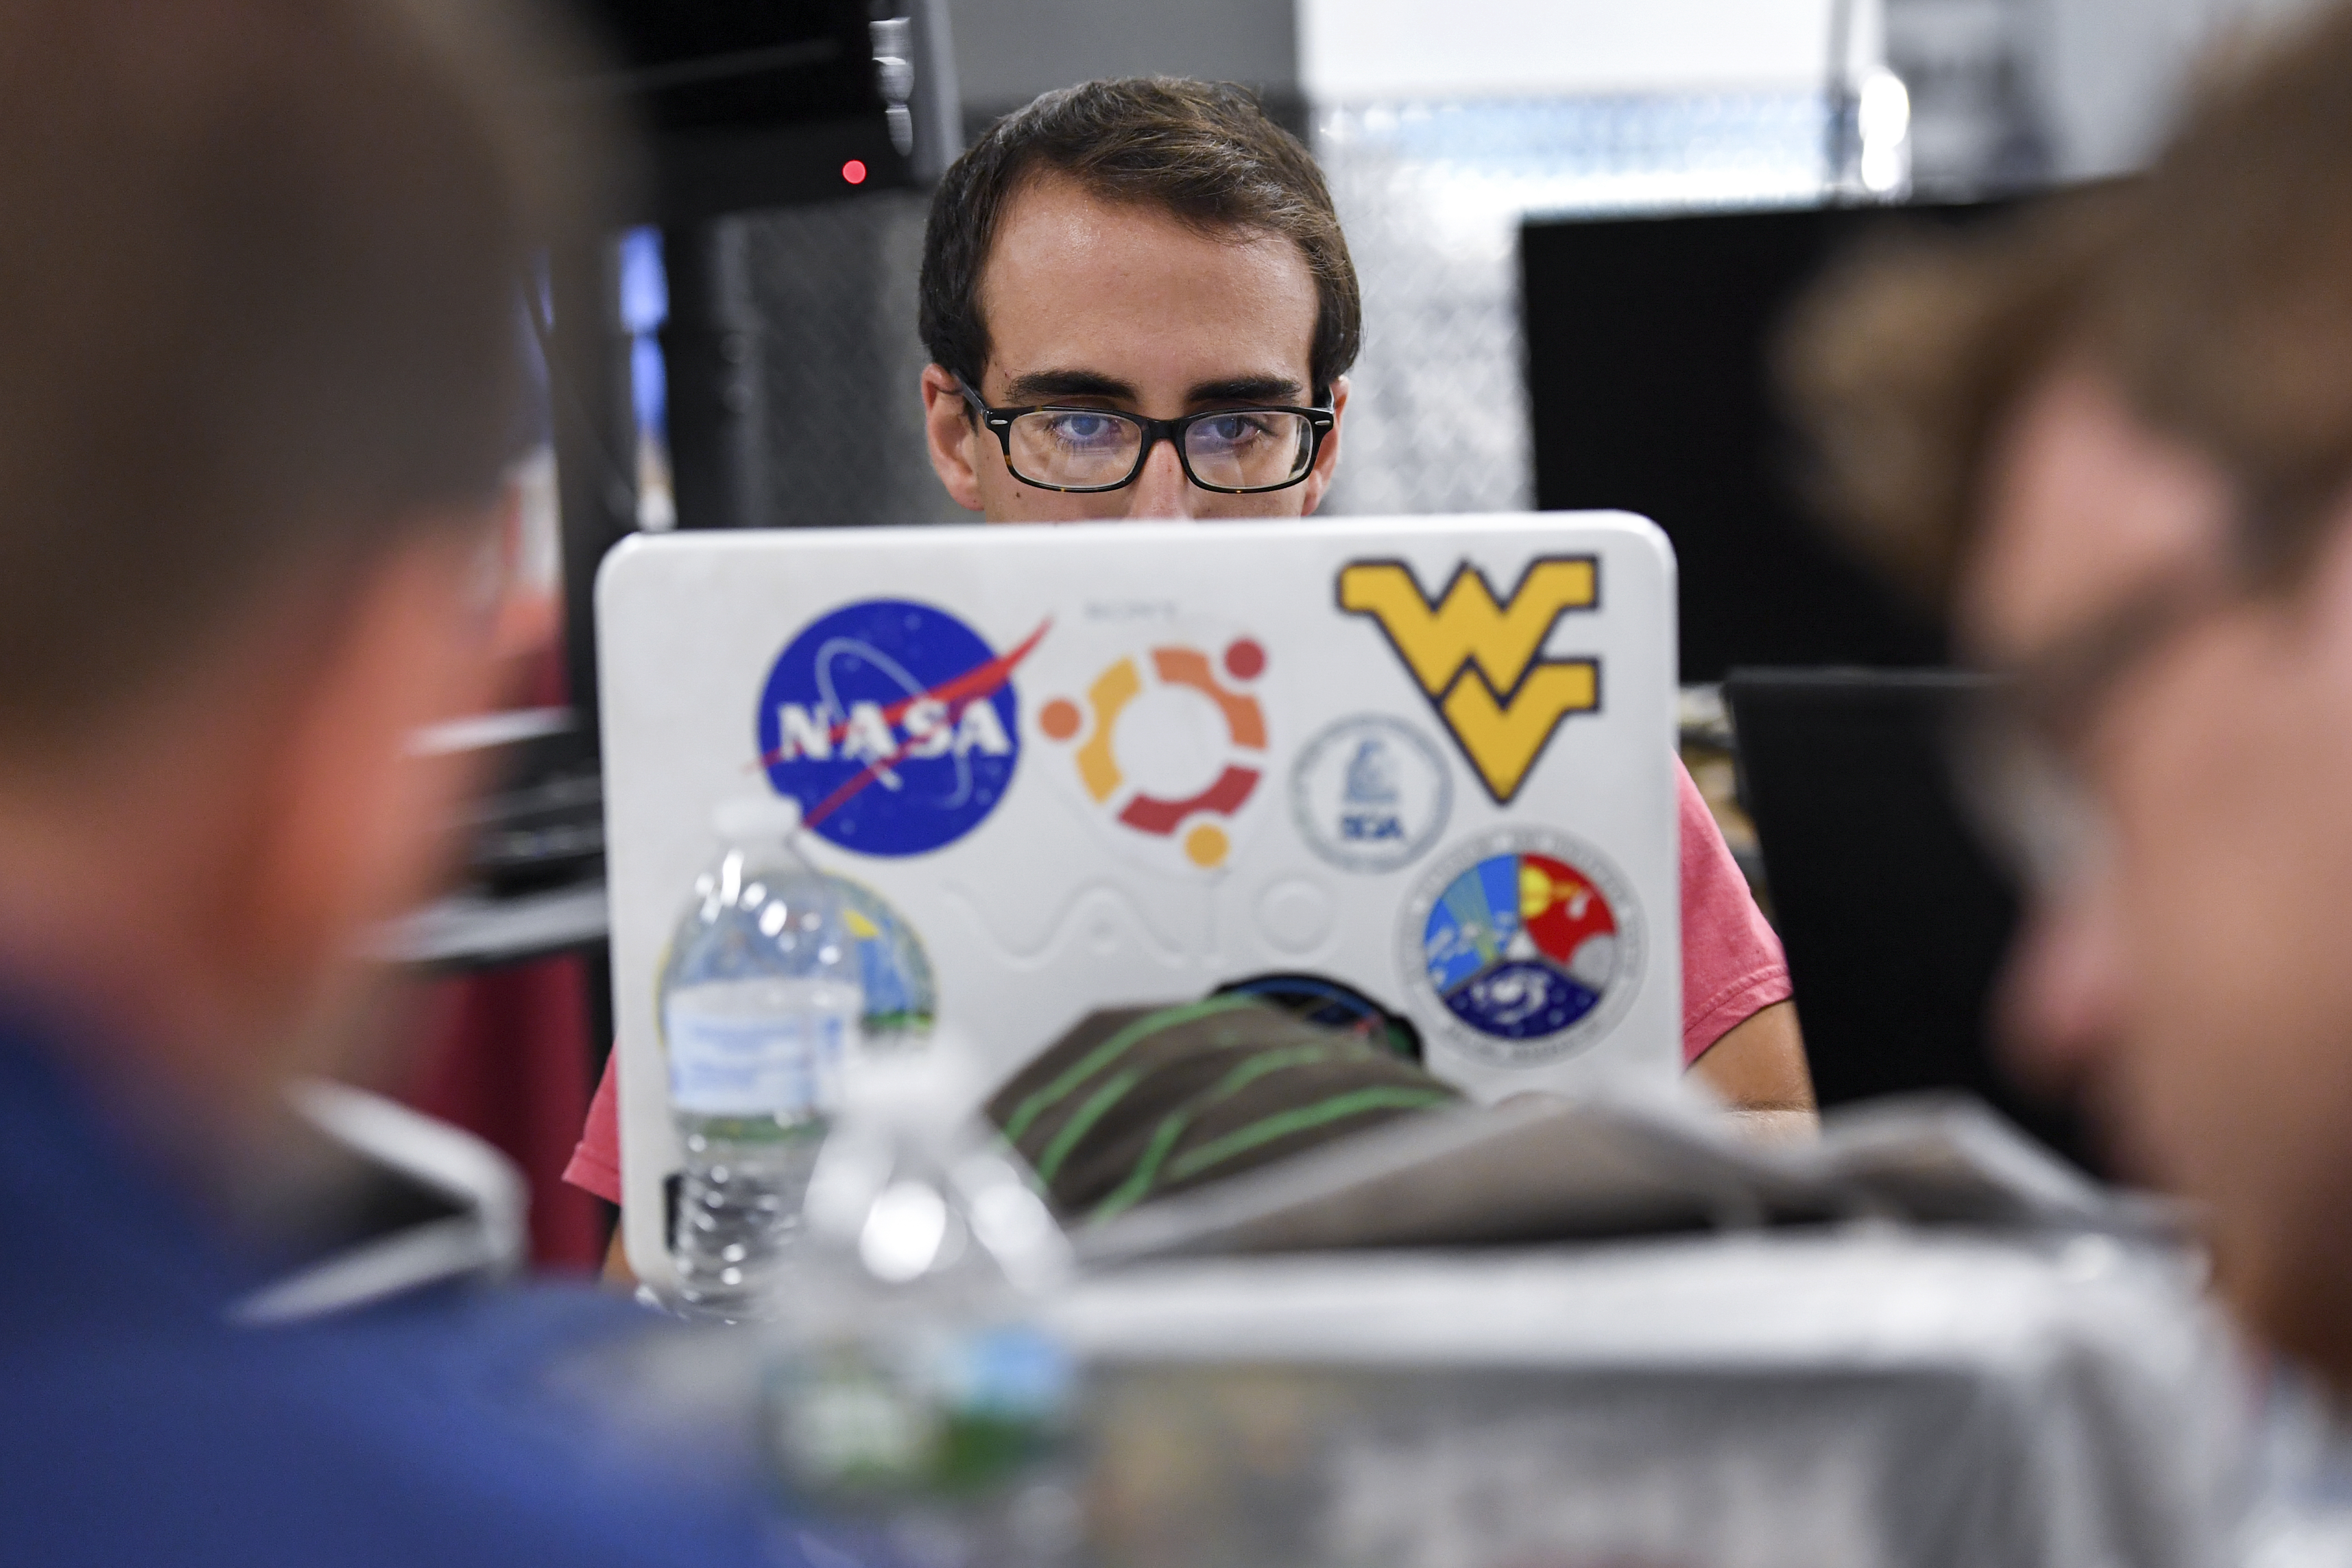 WVU programmer sitting in front of computer.